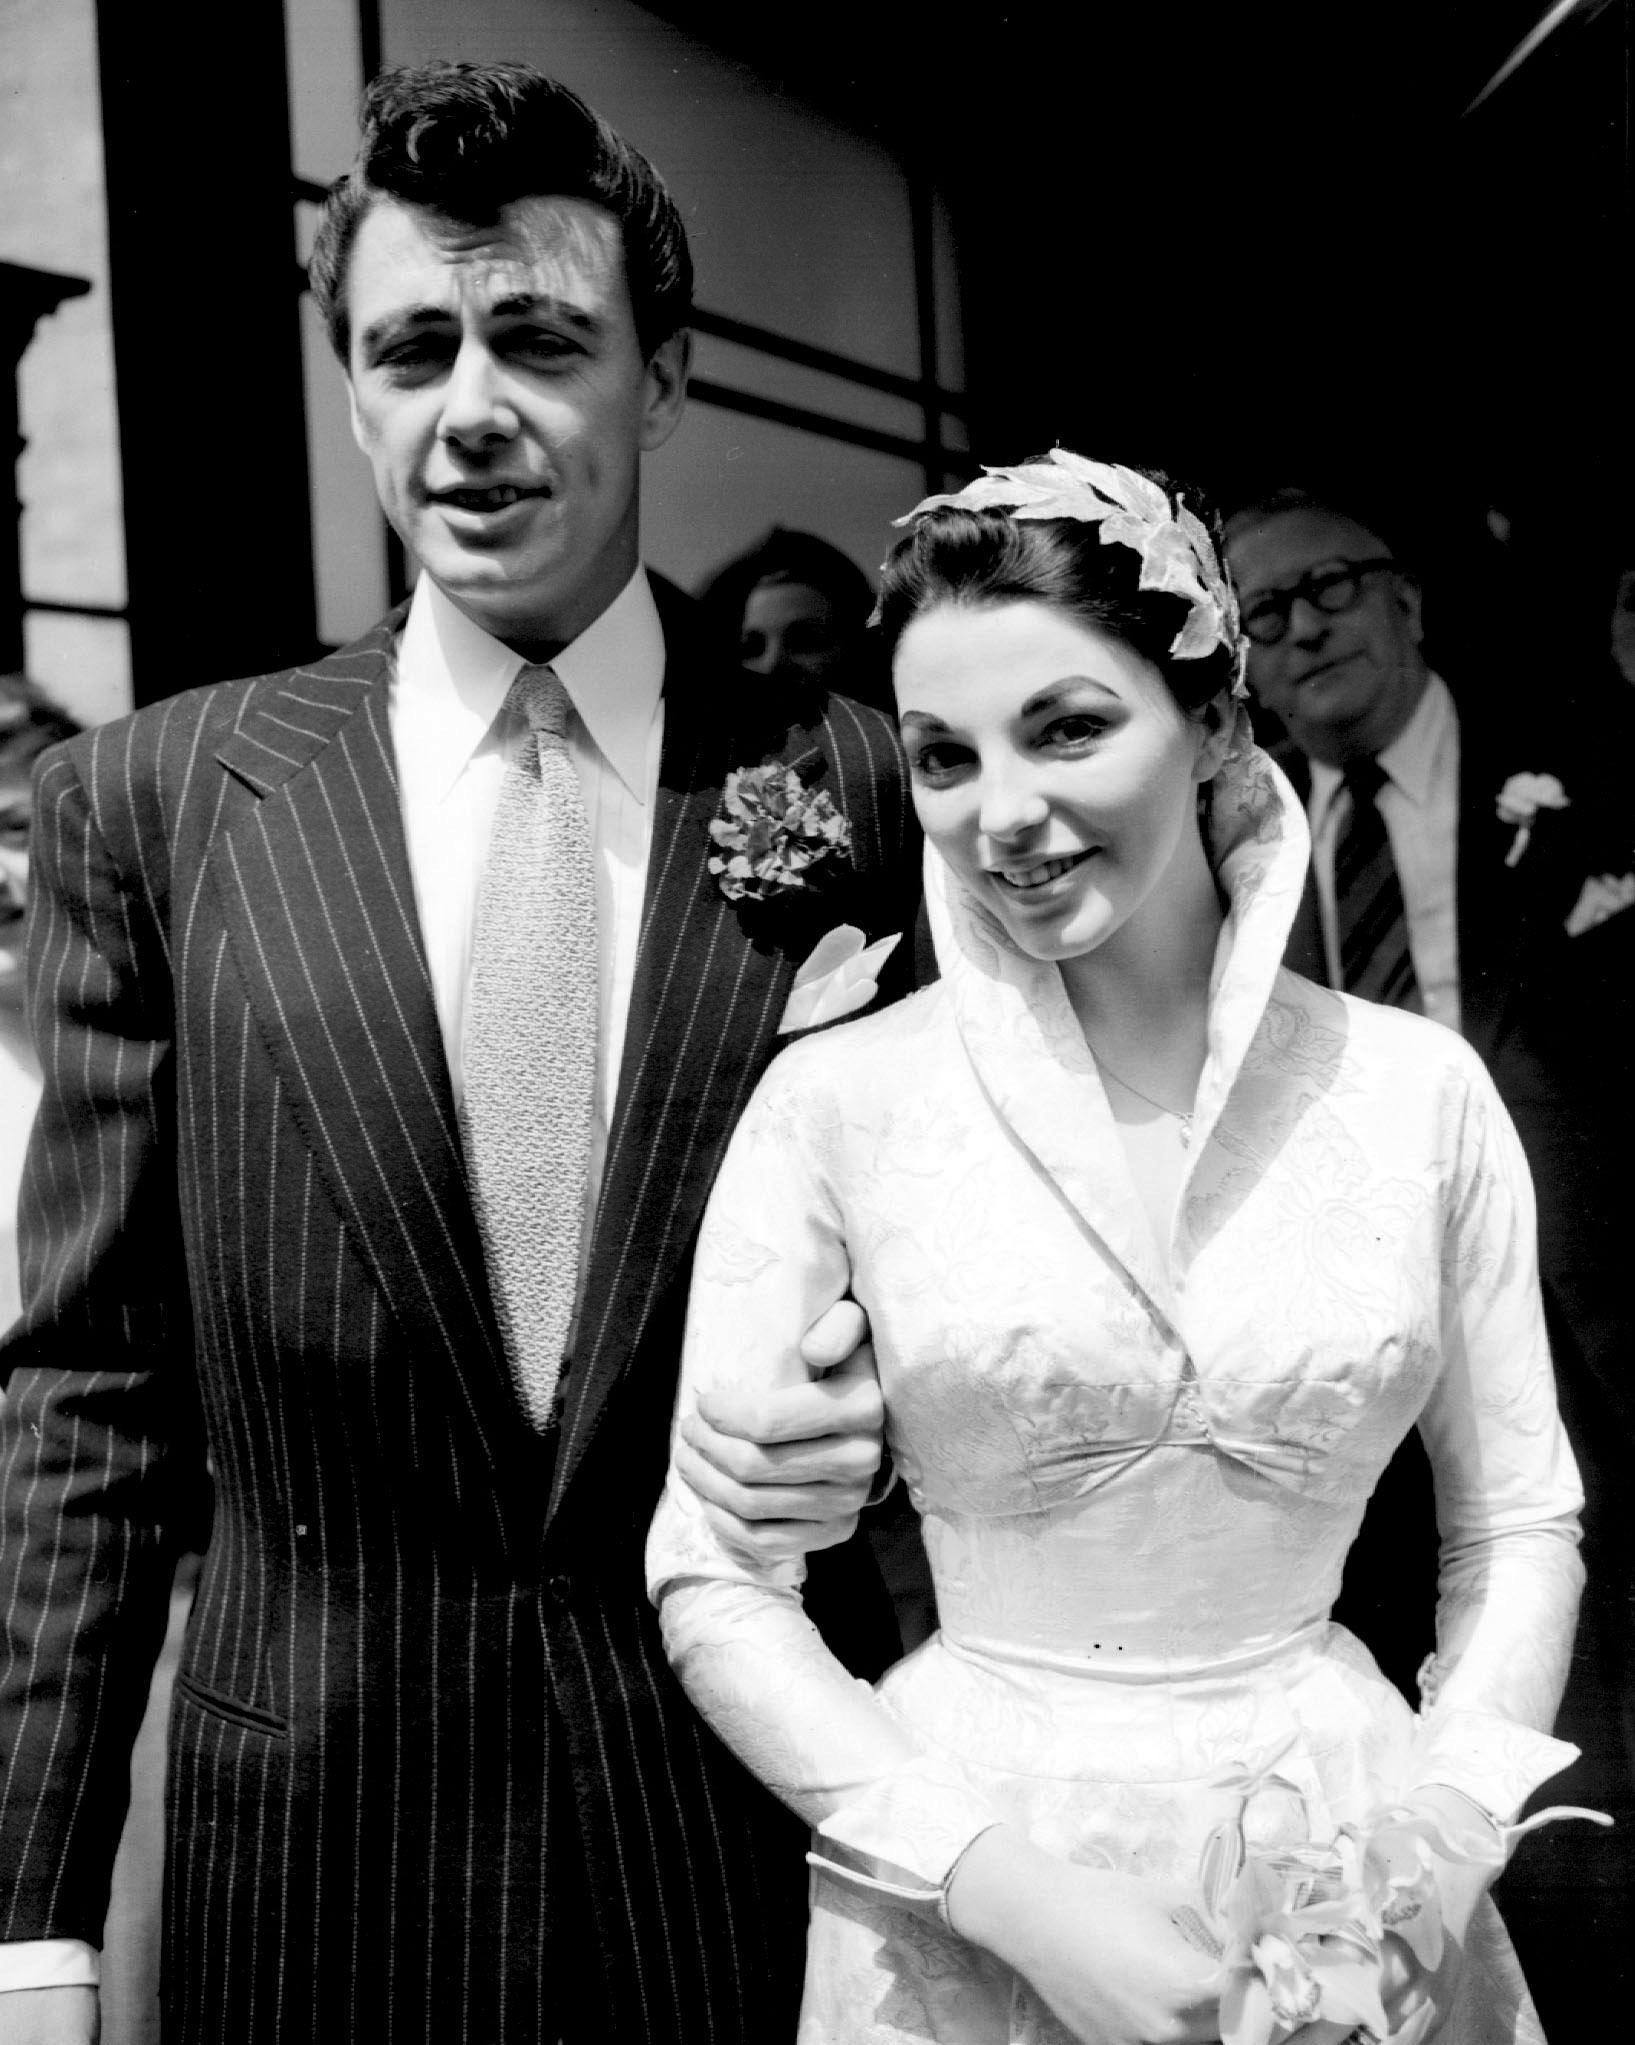 Actor Maxwell Reed and his bride actress Joan Collins after their wedding at Caxton Hall Register Office, London.